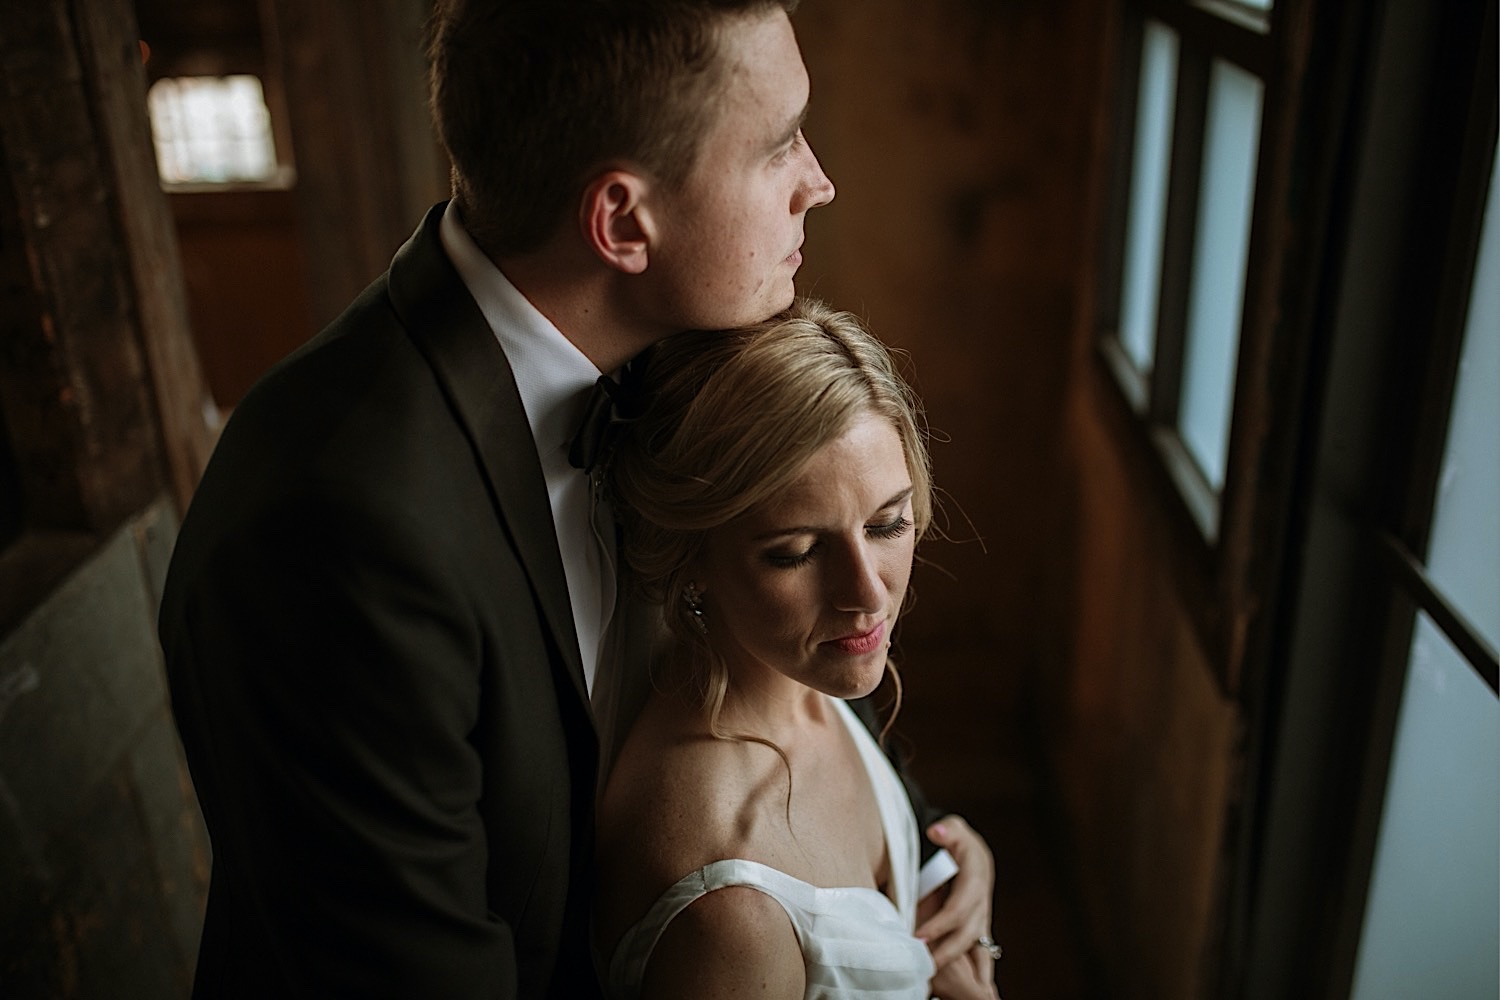 Wedding Photos at the Greenpoint Loft - Bride and Groom in a Stoic Pose Holding Each Other